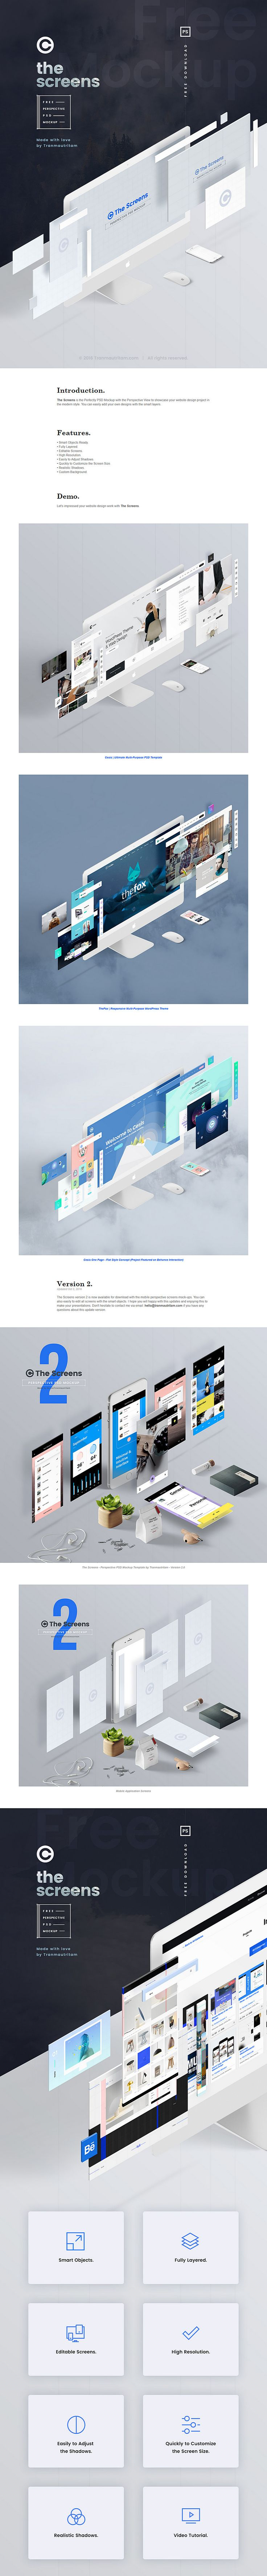 Perspective Web PSD Mockup - ByPeople